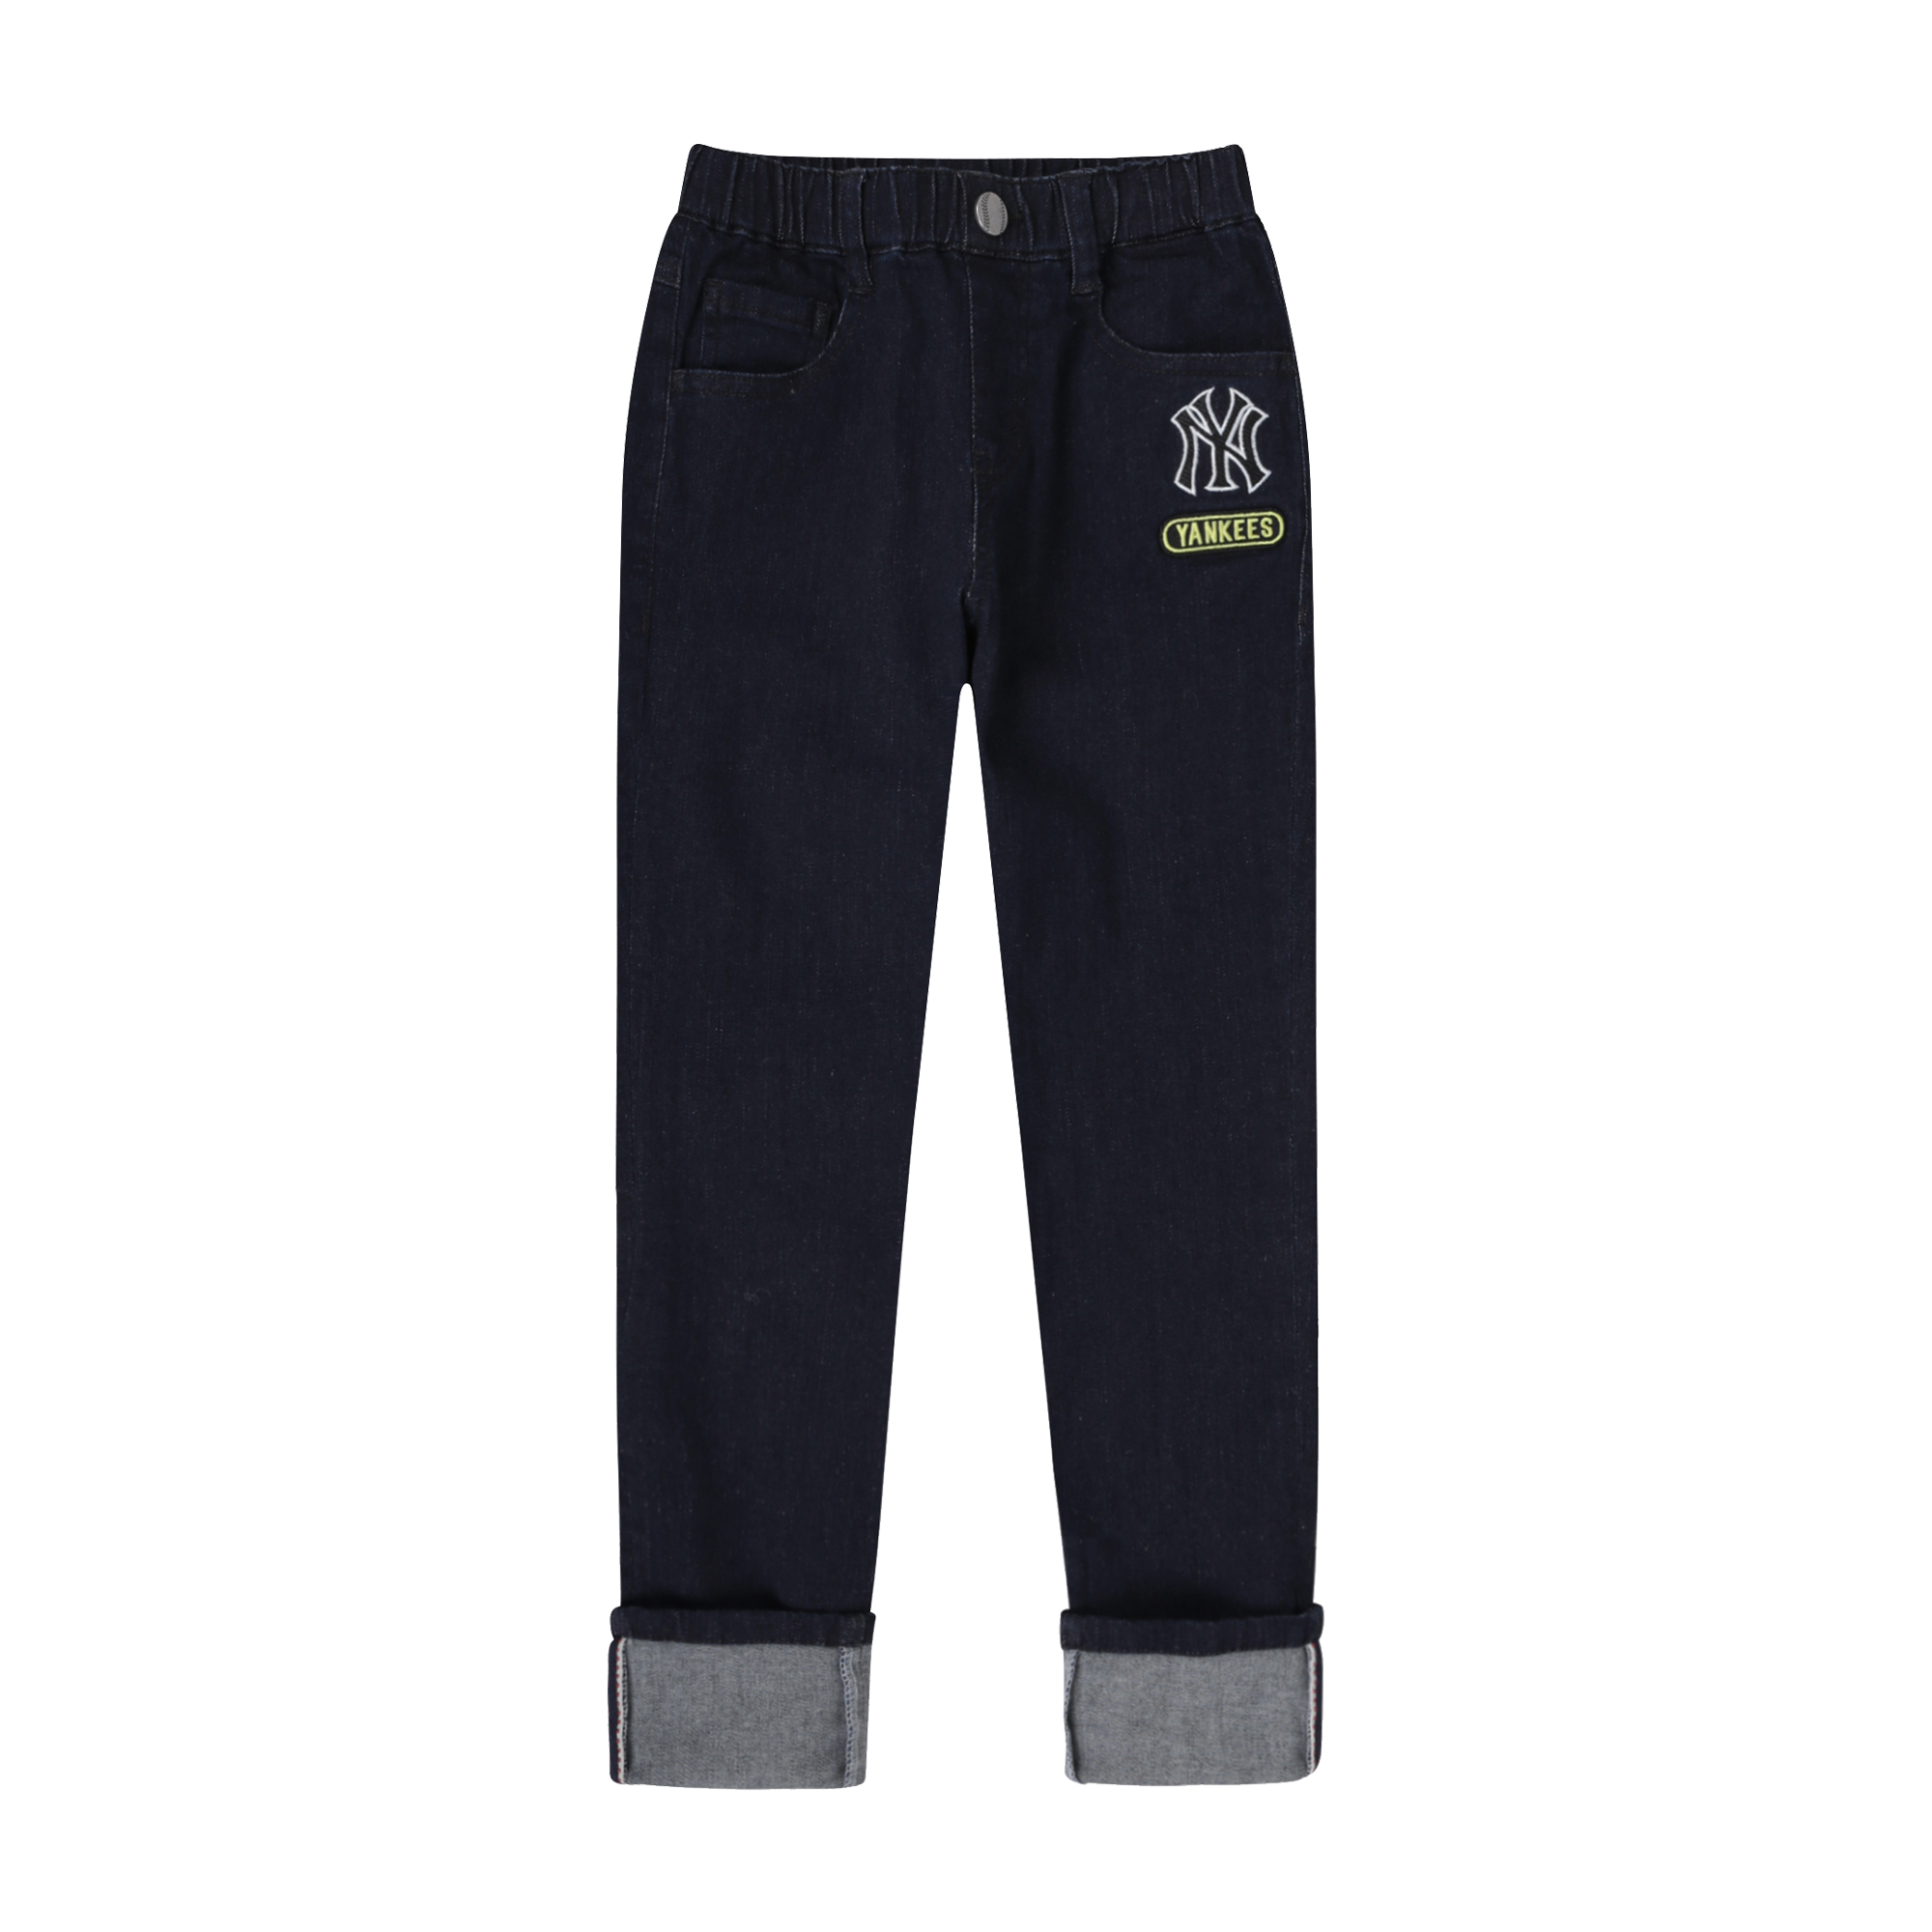 NEW YORK YANKEES UNISEX ROLL-UP DENIM PANTS